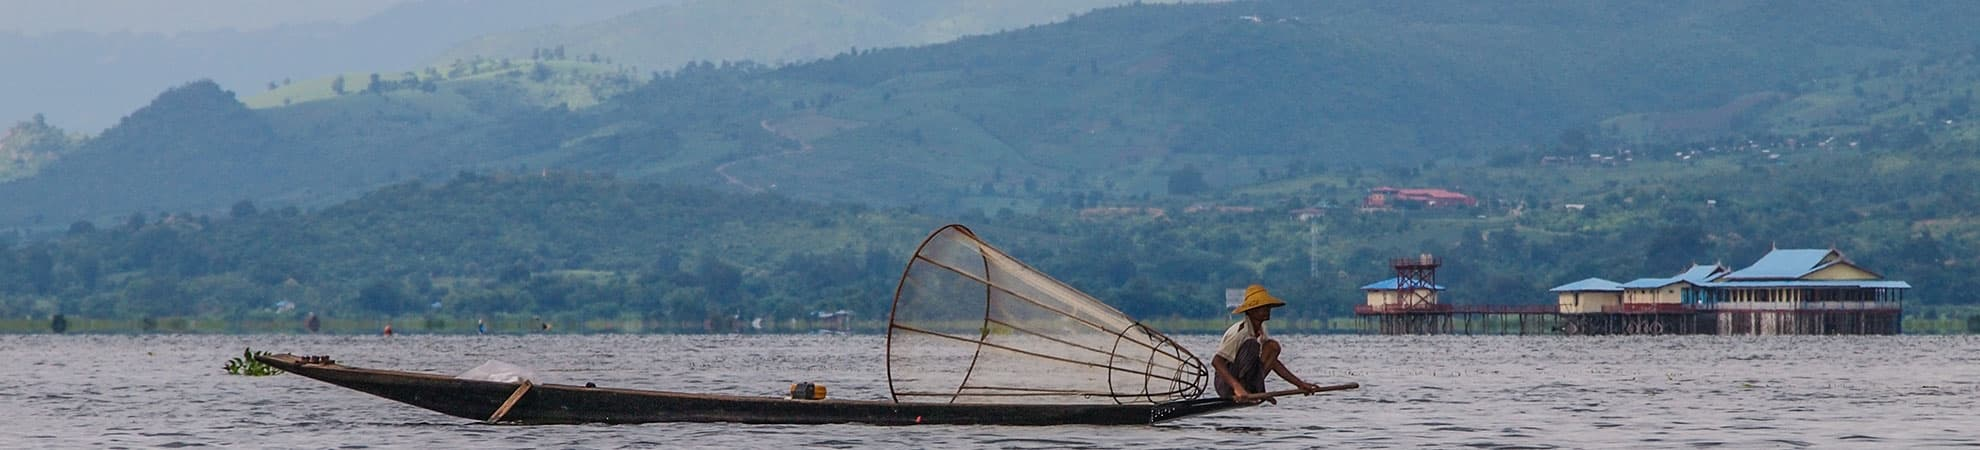 Voyage Lac Inle